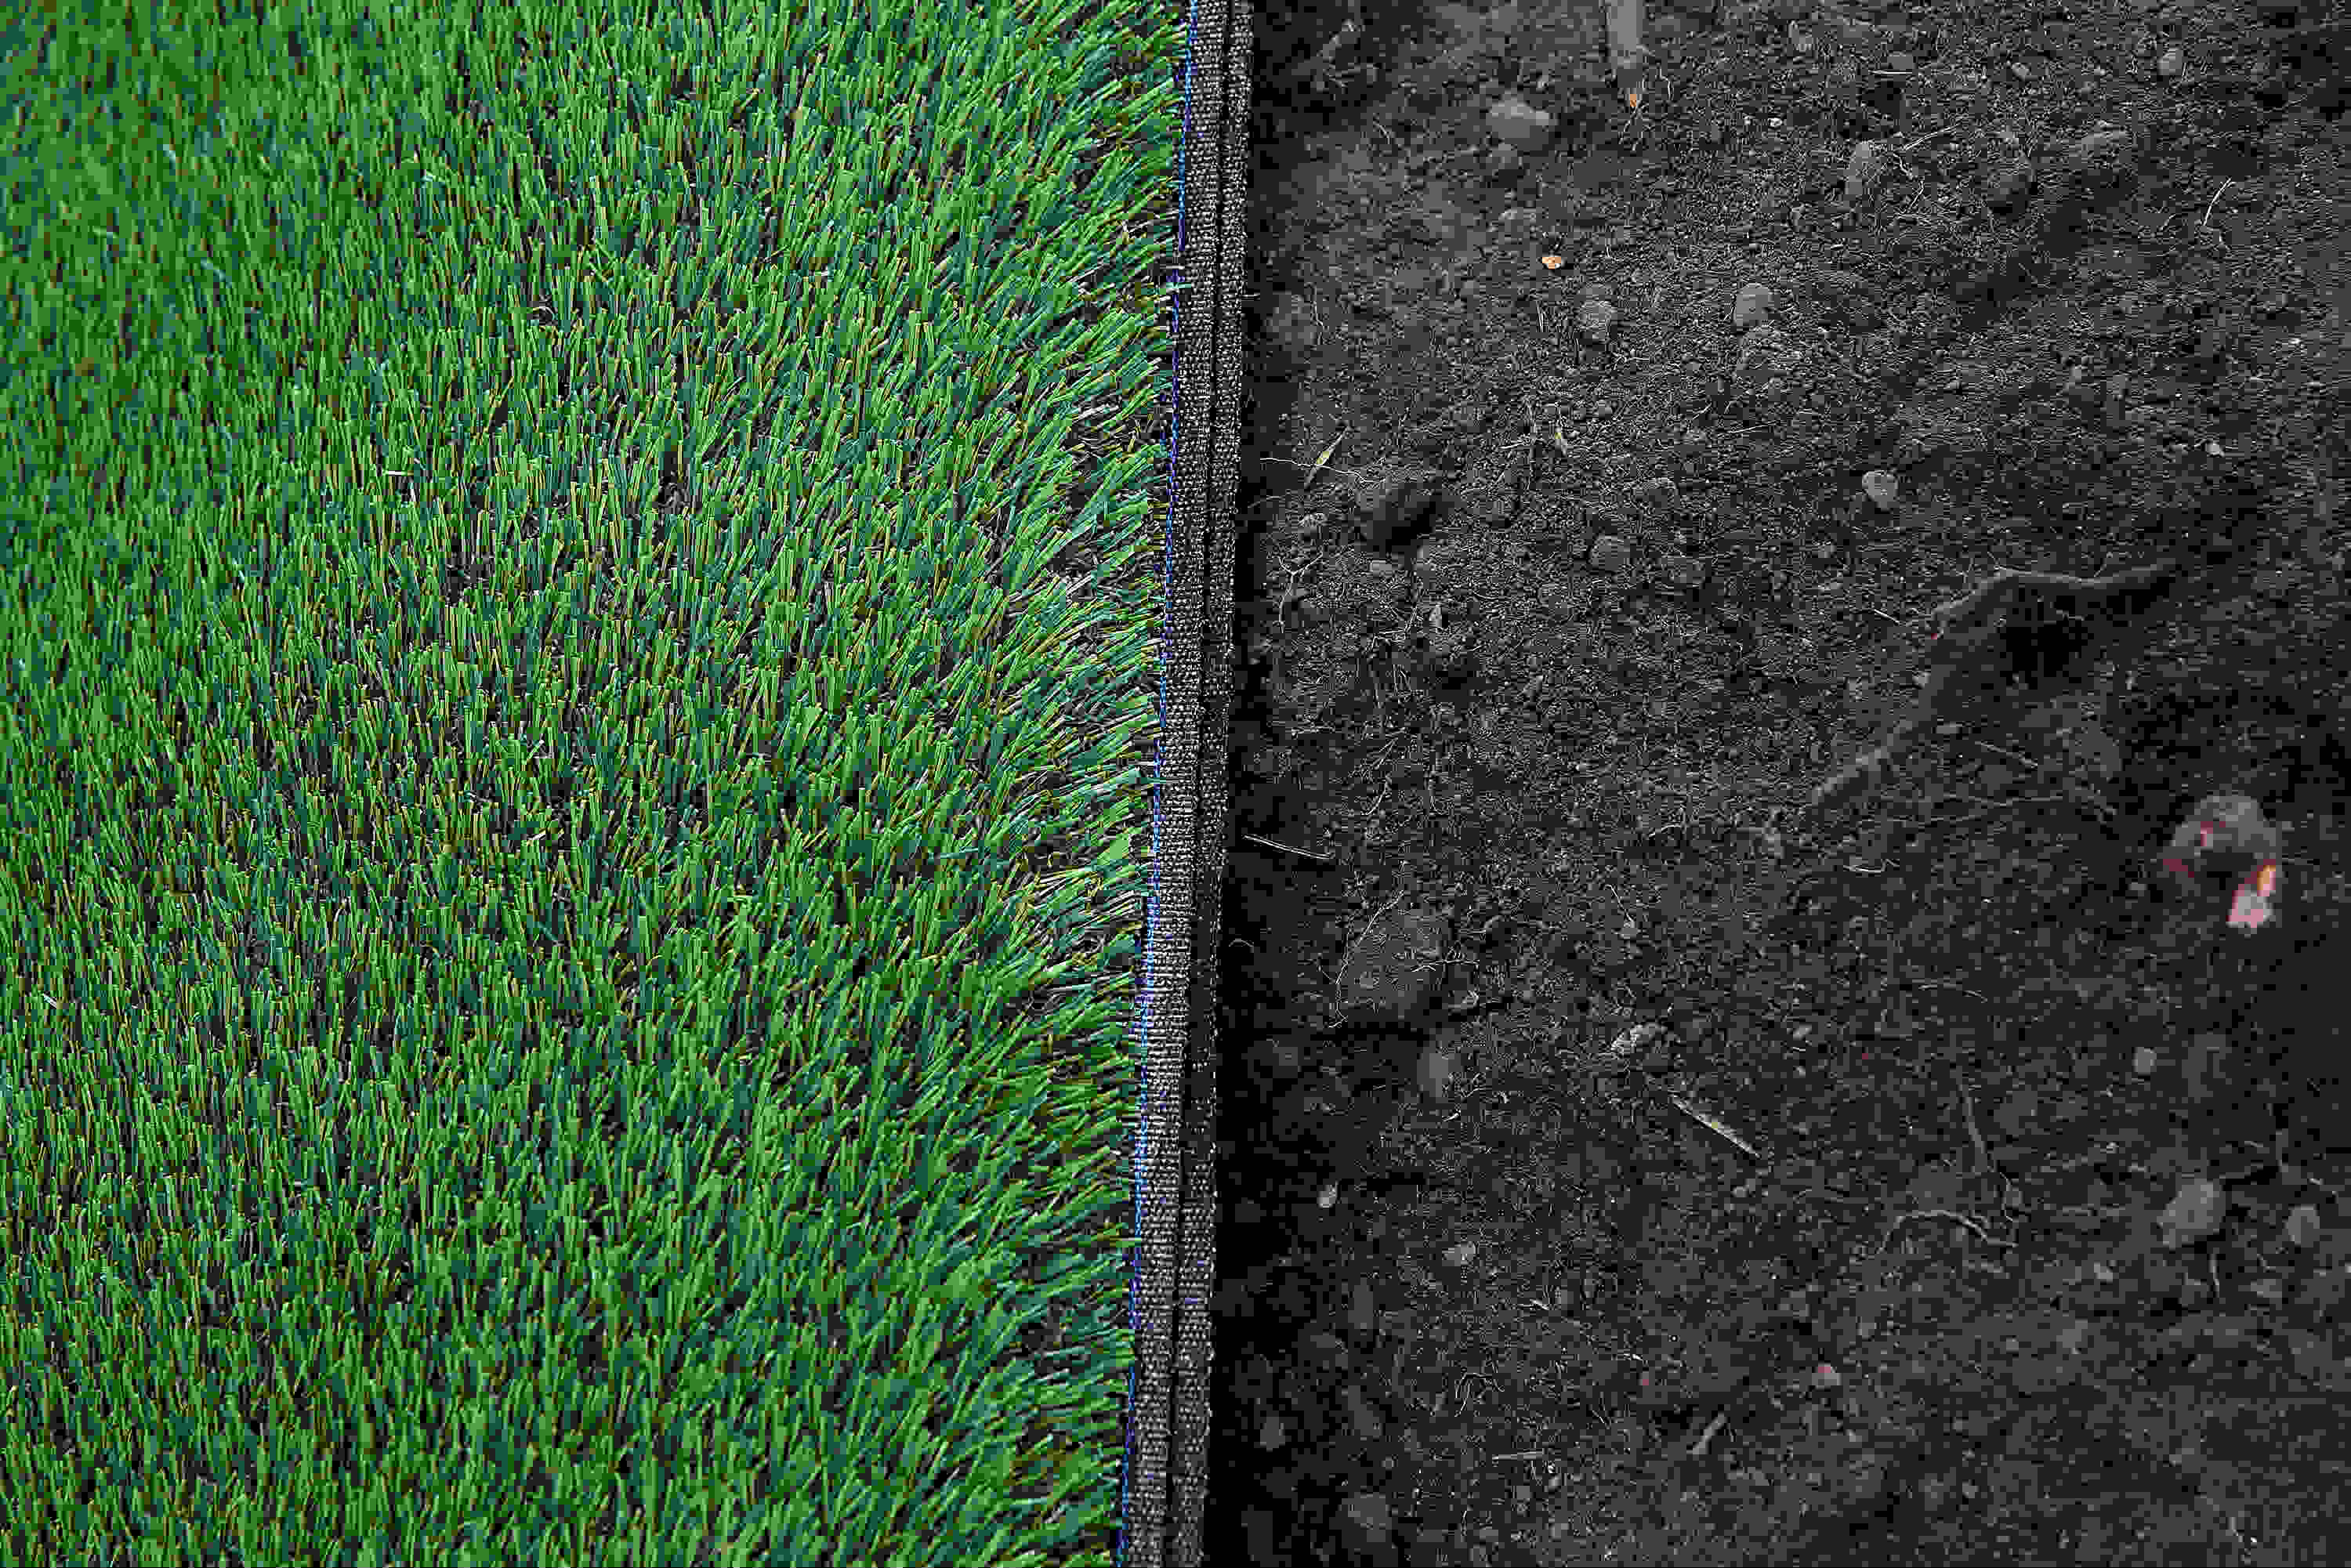 Lawns use a huge amount of water, but dry landscaping can make a big difference